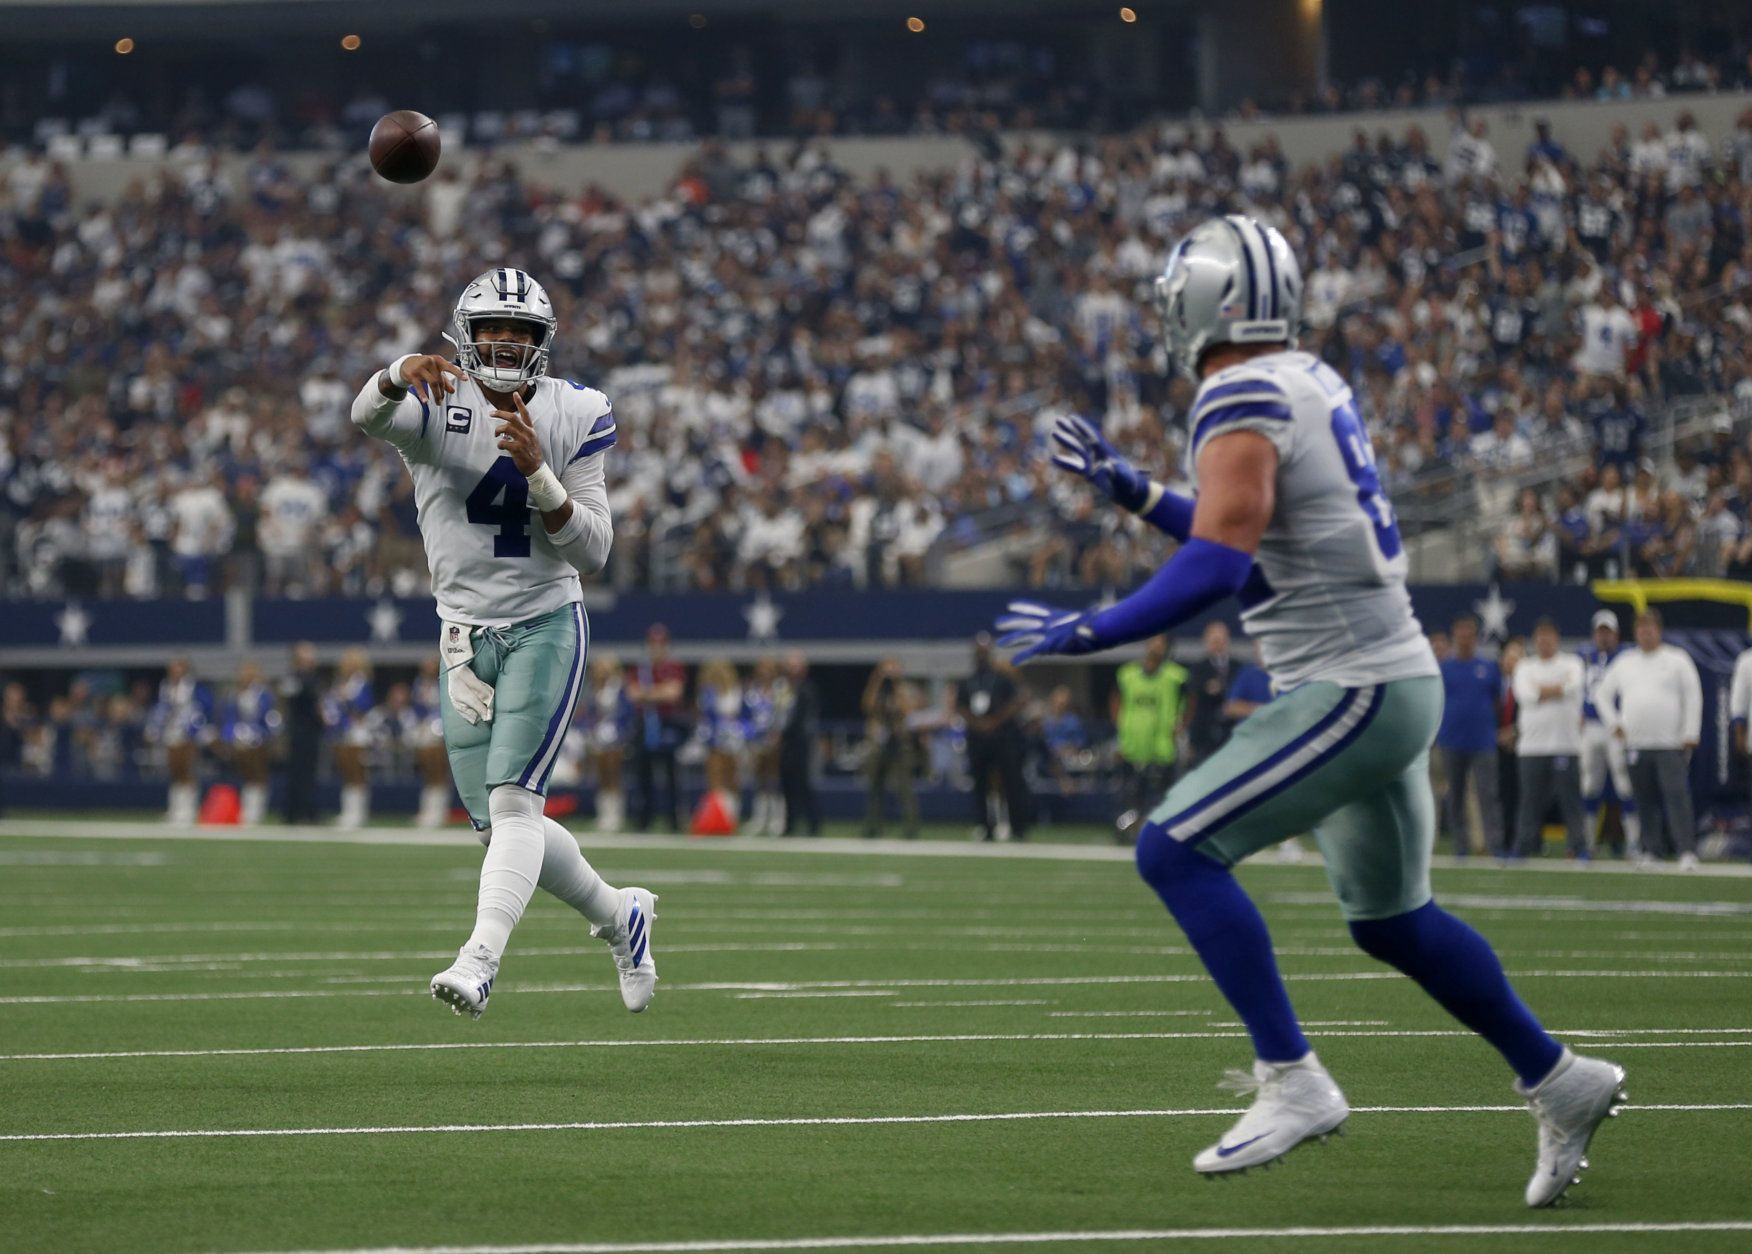 <p><b><i>Giants 17</i></b><br /> <b><i>Cowboys 35</i></b></p> <p>Zeke Elliott was just all right, but Dak Prescott looked like the guy the Cowboys should have broken bank for before the season: His 405 yard, four TD performance netted him a perfect passer rating (making this the first time in a generation two QBs have done that on the same day), leaving the Giants so thoroughly beaten they gave Daniel Jones a few reps in garbage time. The Redskins better work out whatever communication issues they have, or next week&#8217;s game at FedEx Field is already over.</p>